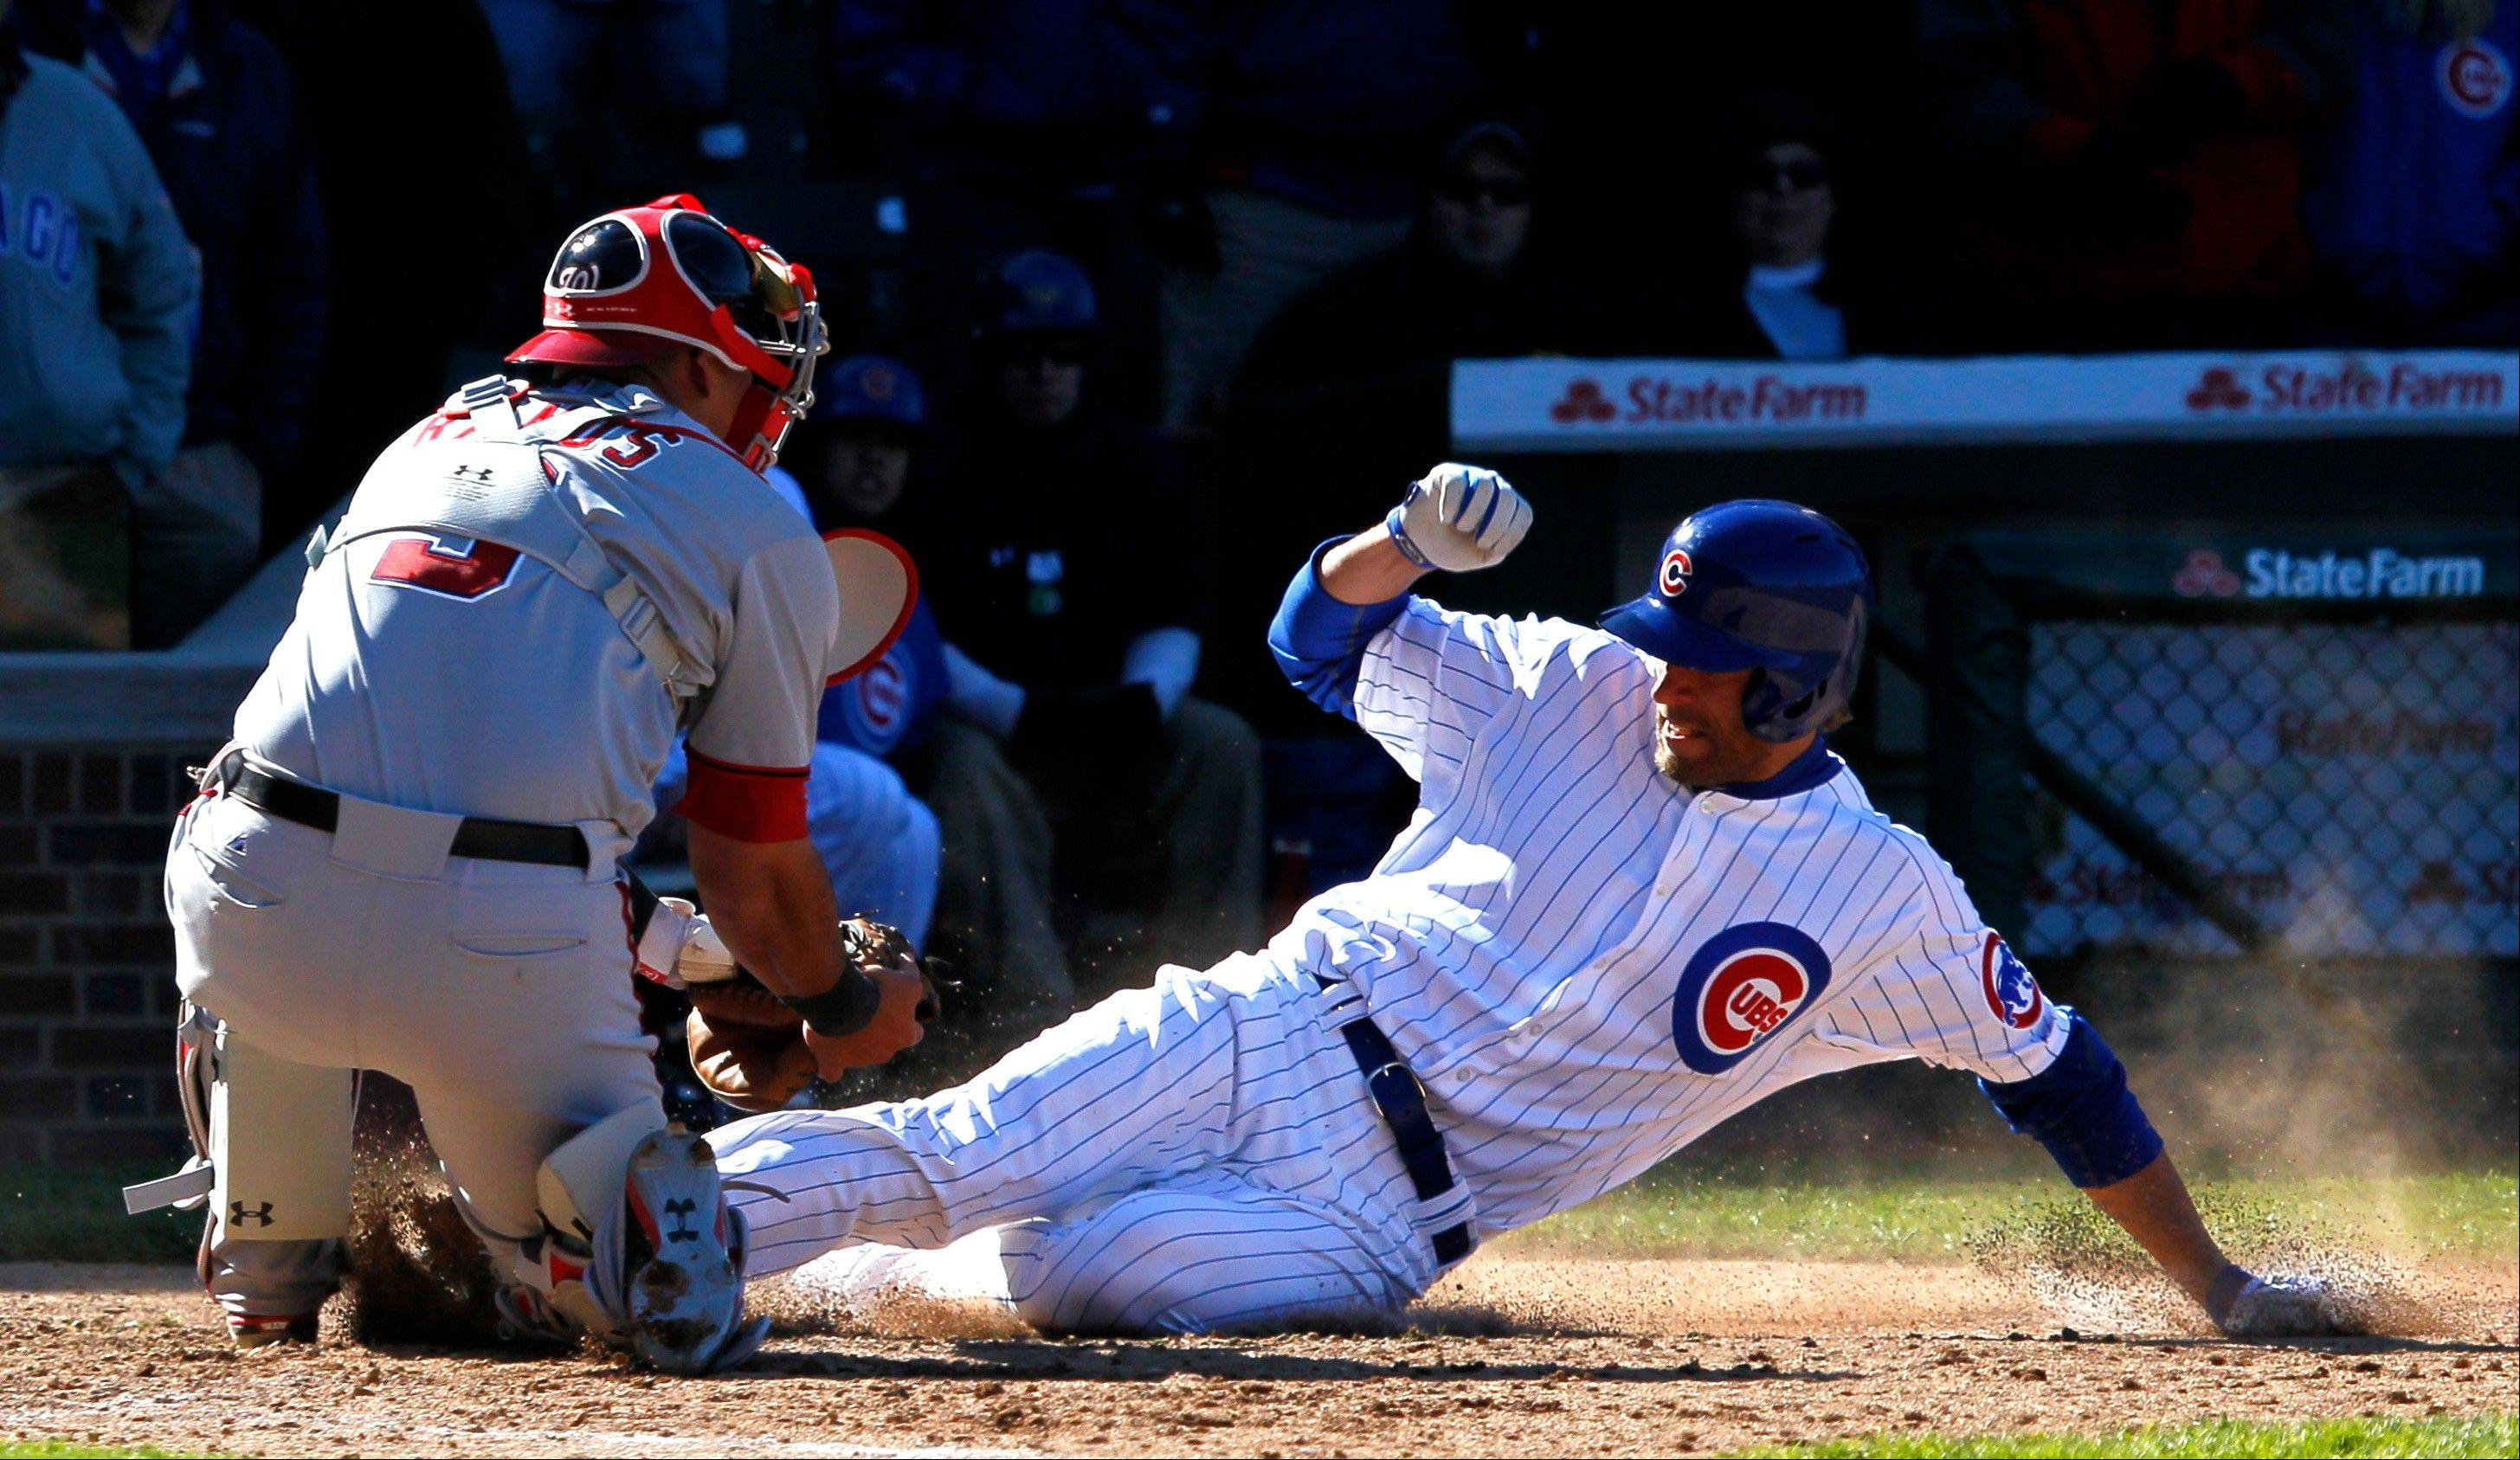 Washington Nationals catcher Wilson Ramos, left, tags out Chicago Cubs' Joe Mather, during the ninth inning of a baseball game, Thursday, April 5, 2012, in Chicago.